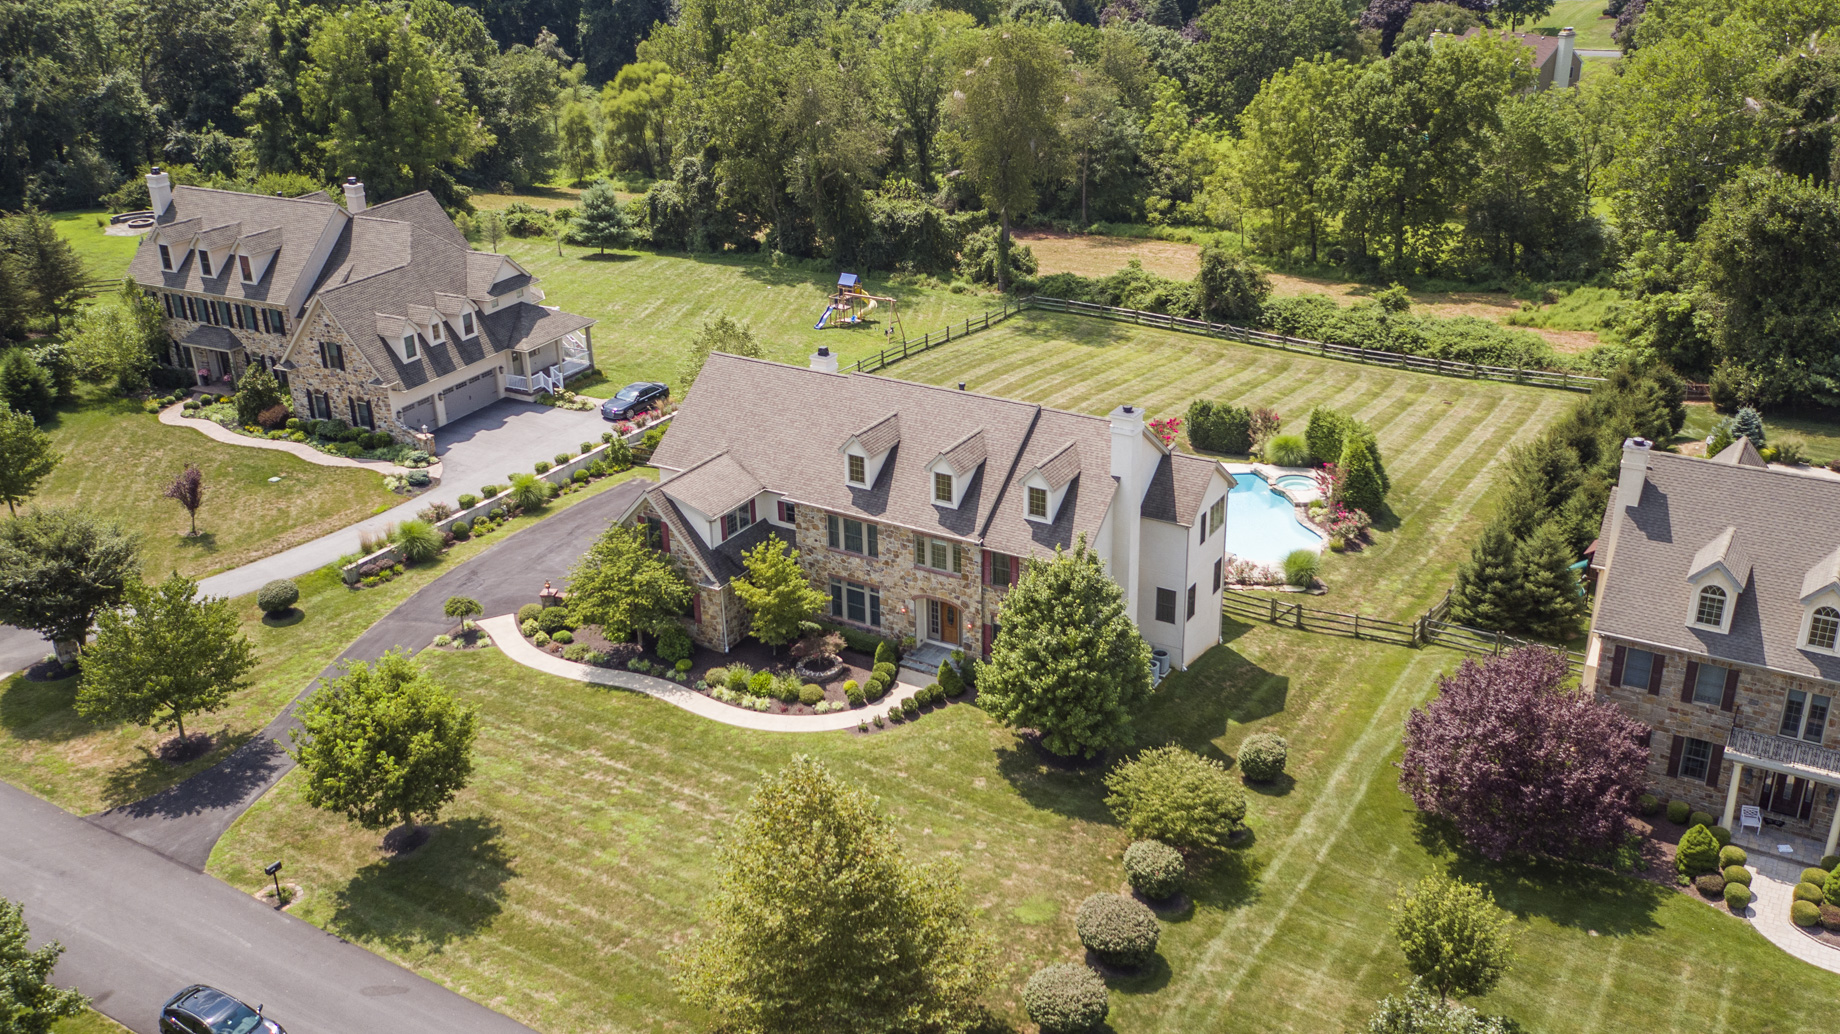 18 Colonial Dr - West Chester, PA